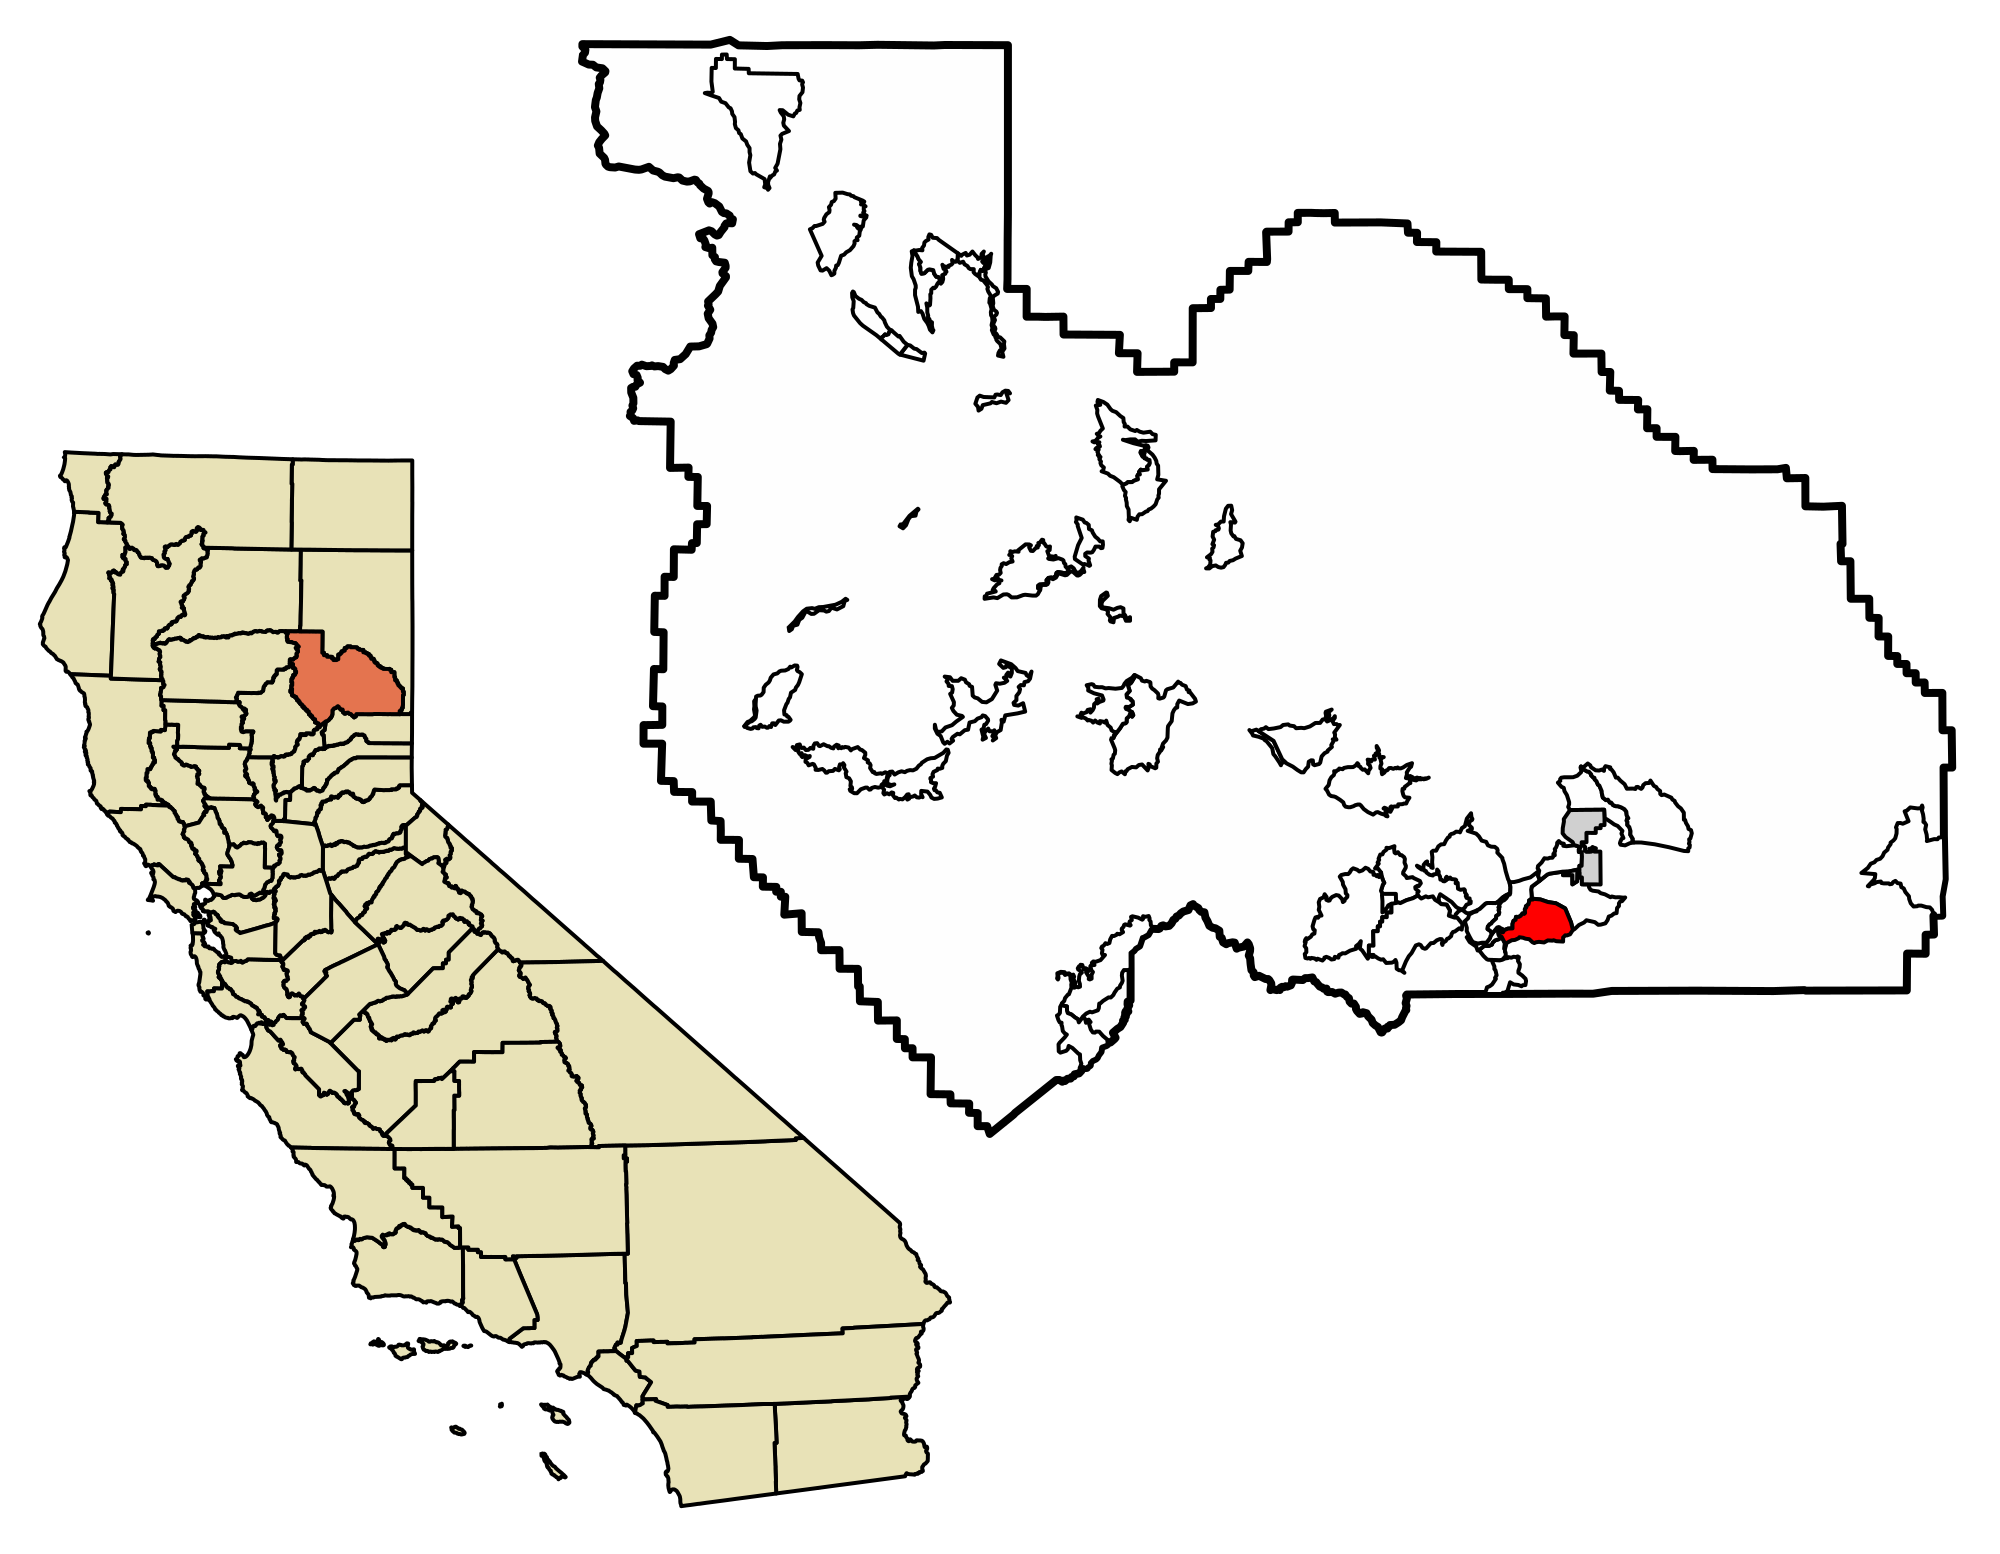 California svg gold. File plumas county incorporated